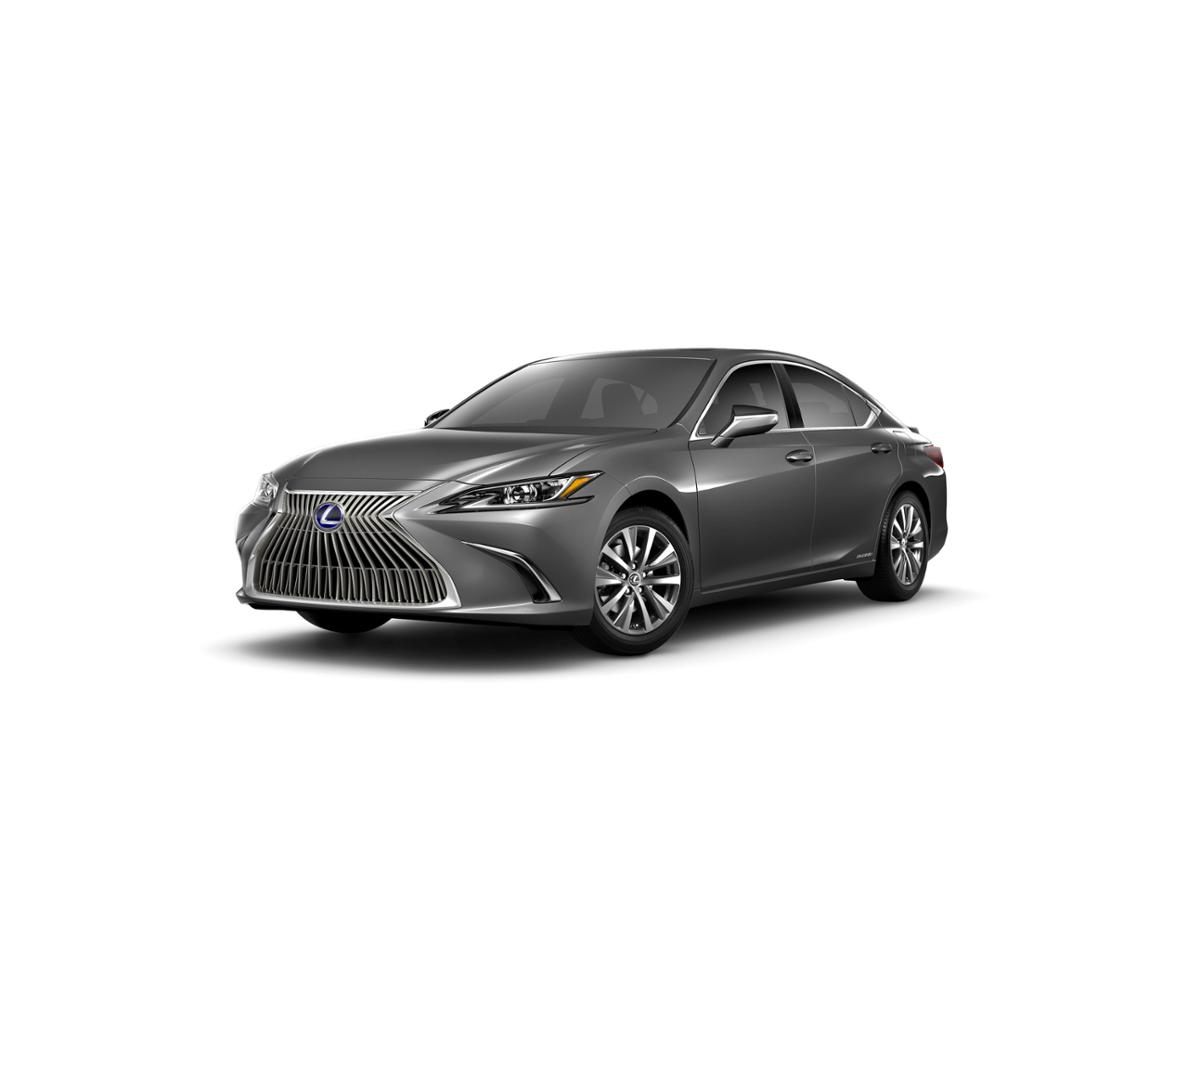 2019 Lexus ES 300h Vehicle Photo in Oakhurst, NJ 07755